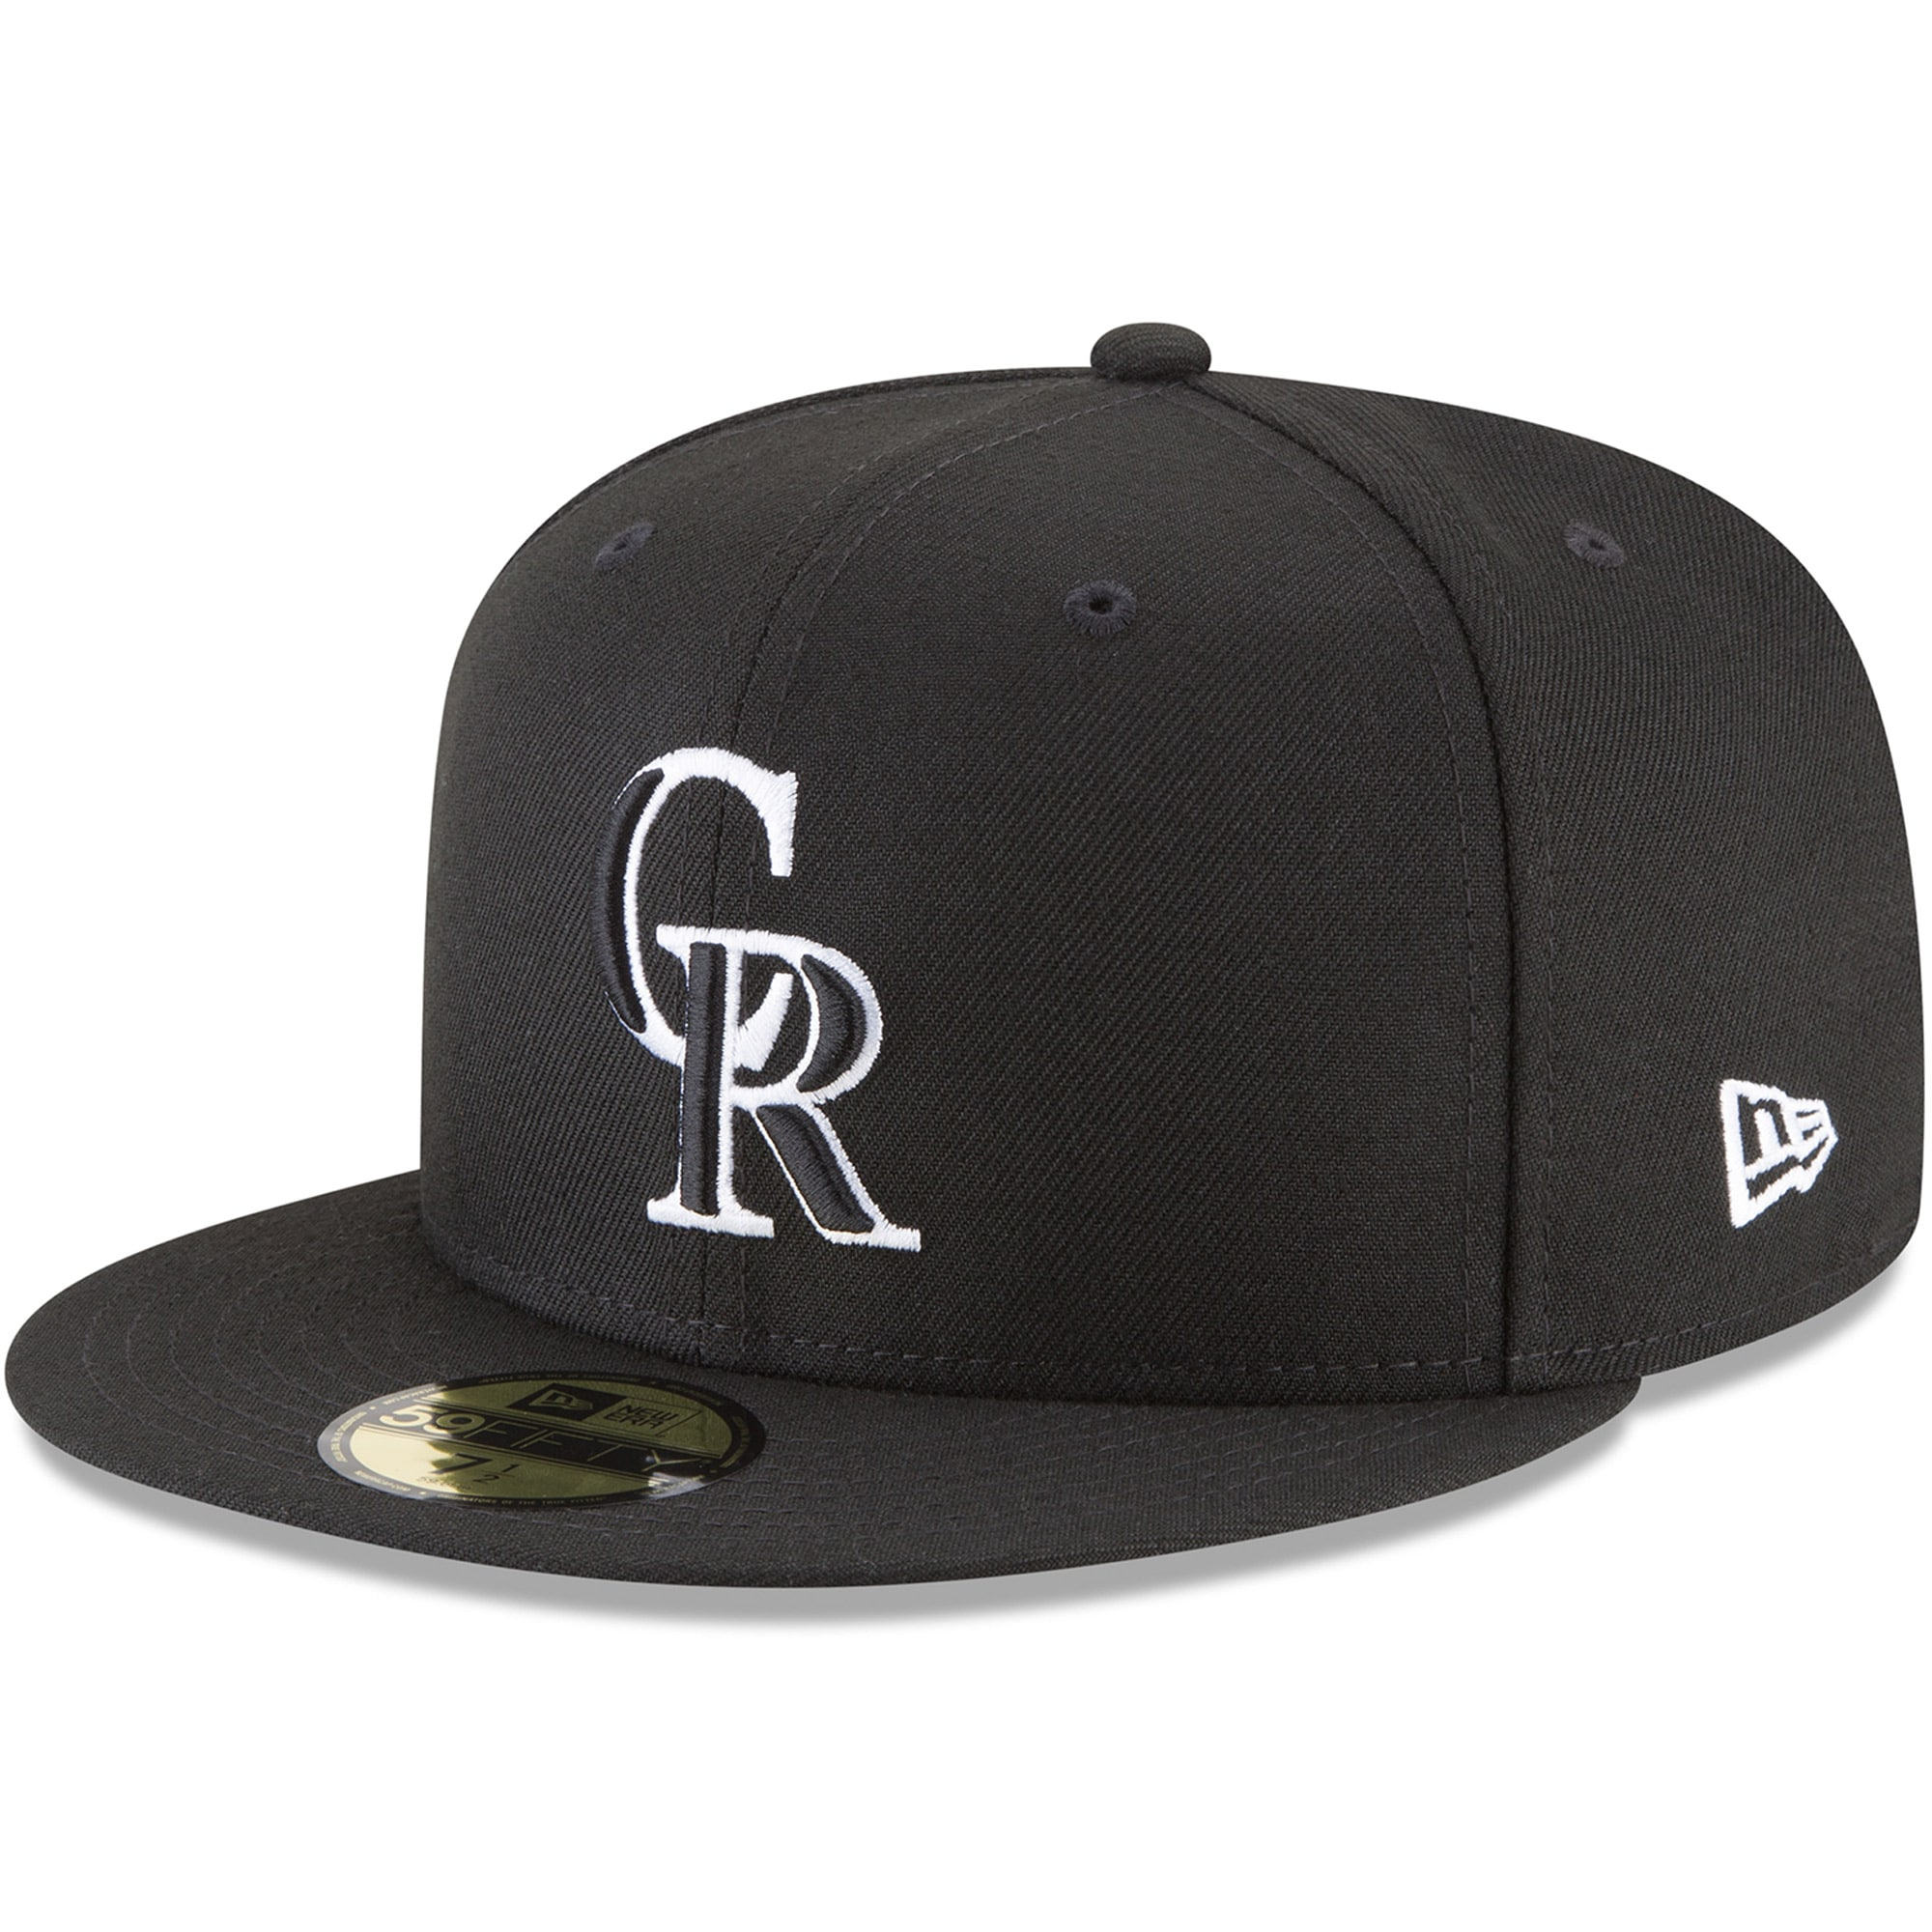 Colorado Rockies New Era 59FIFTY Fitted Hat - Black